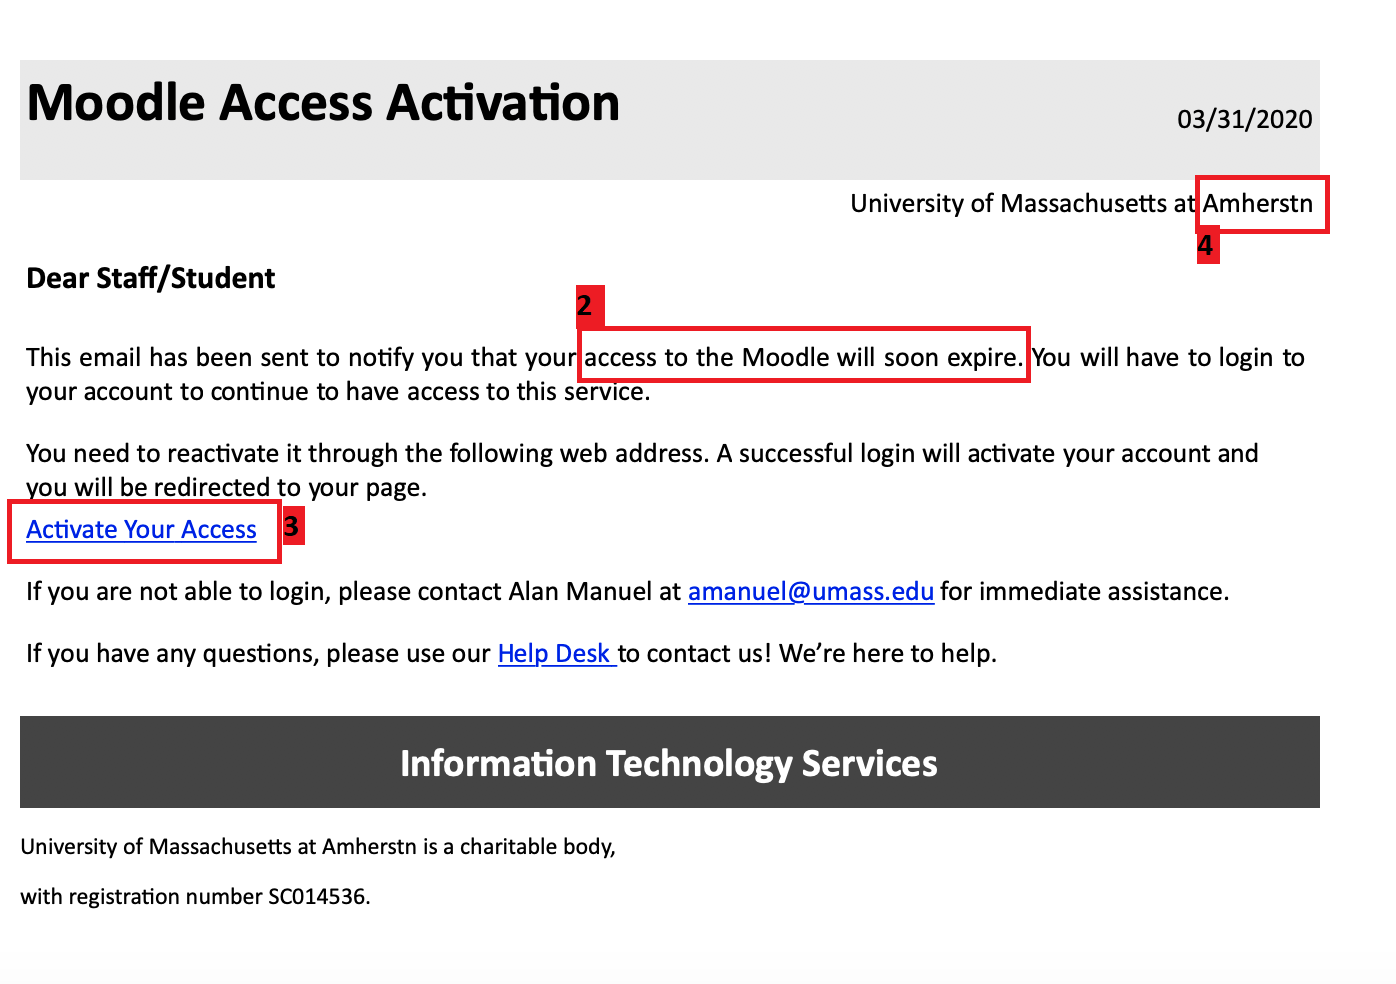 phishing message example 3 31 2020; message from 'University Libraries'